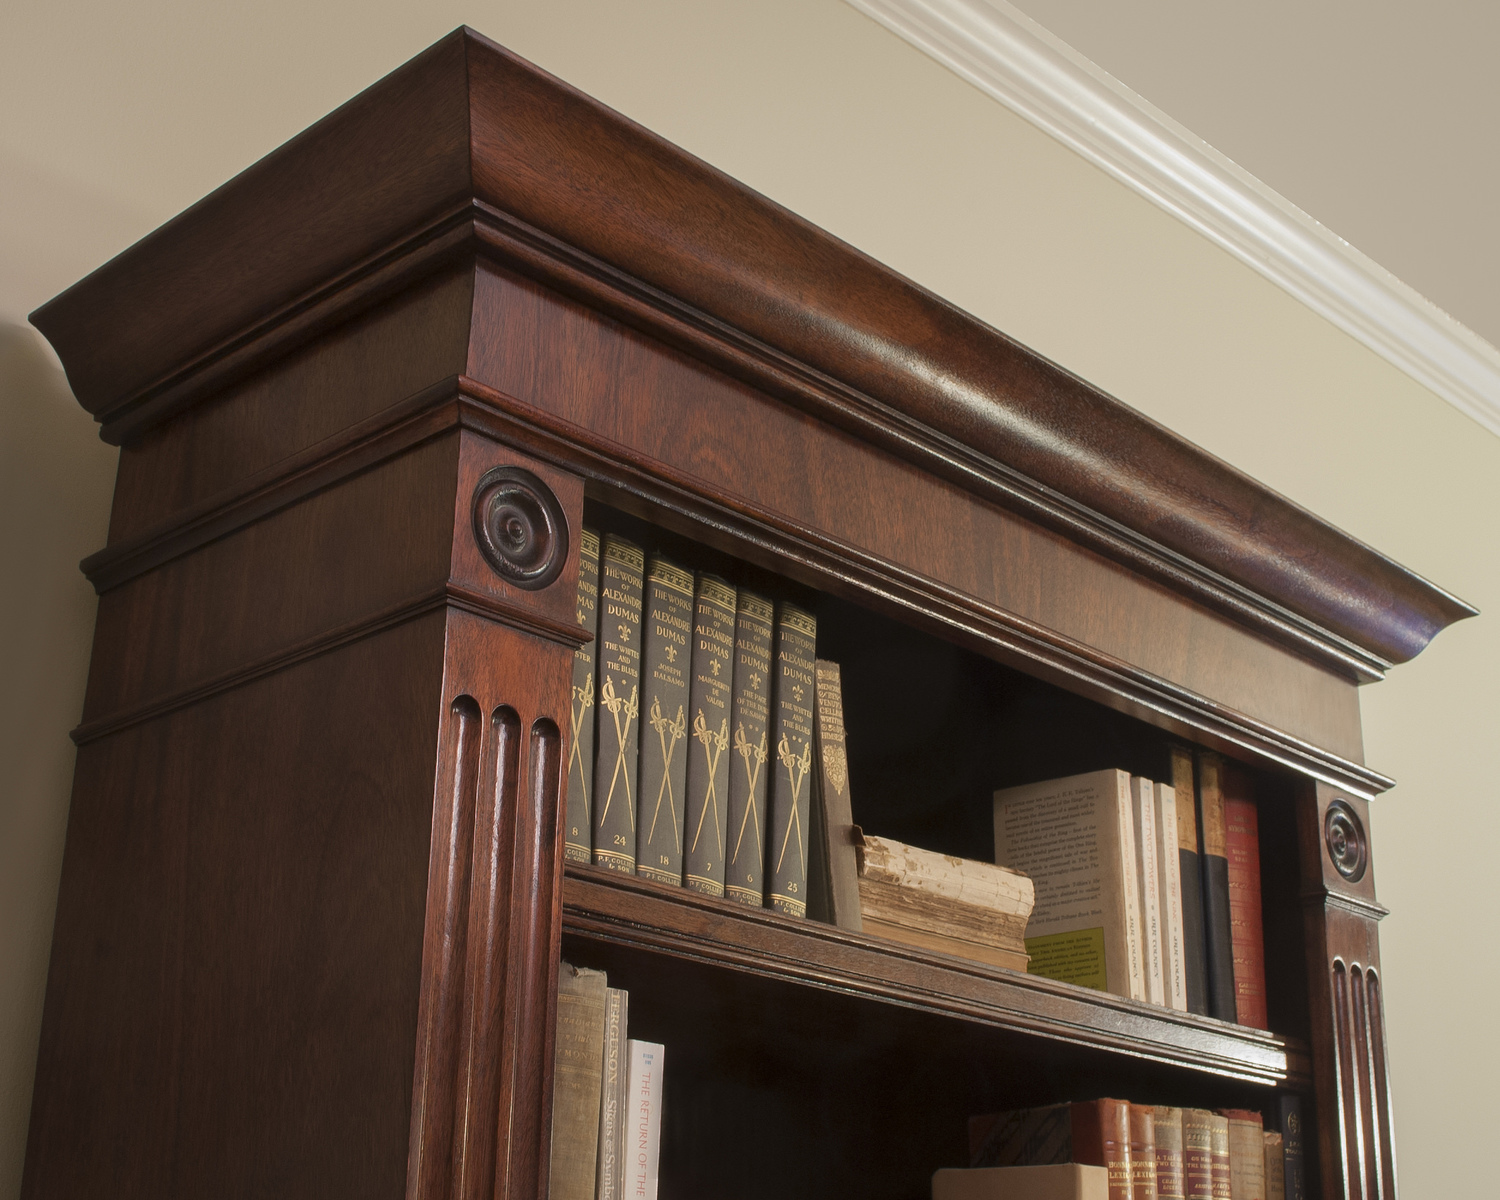 Traditional-mahogany-bookshelf-Detail.jpg